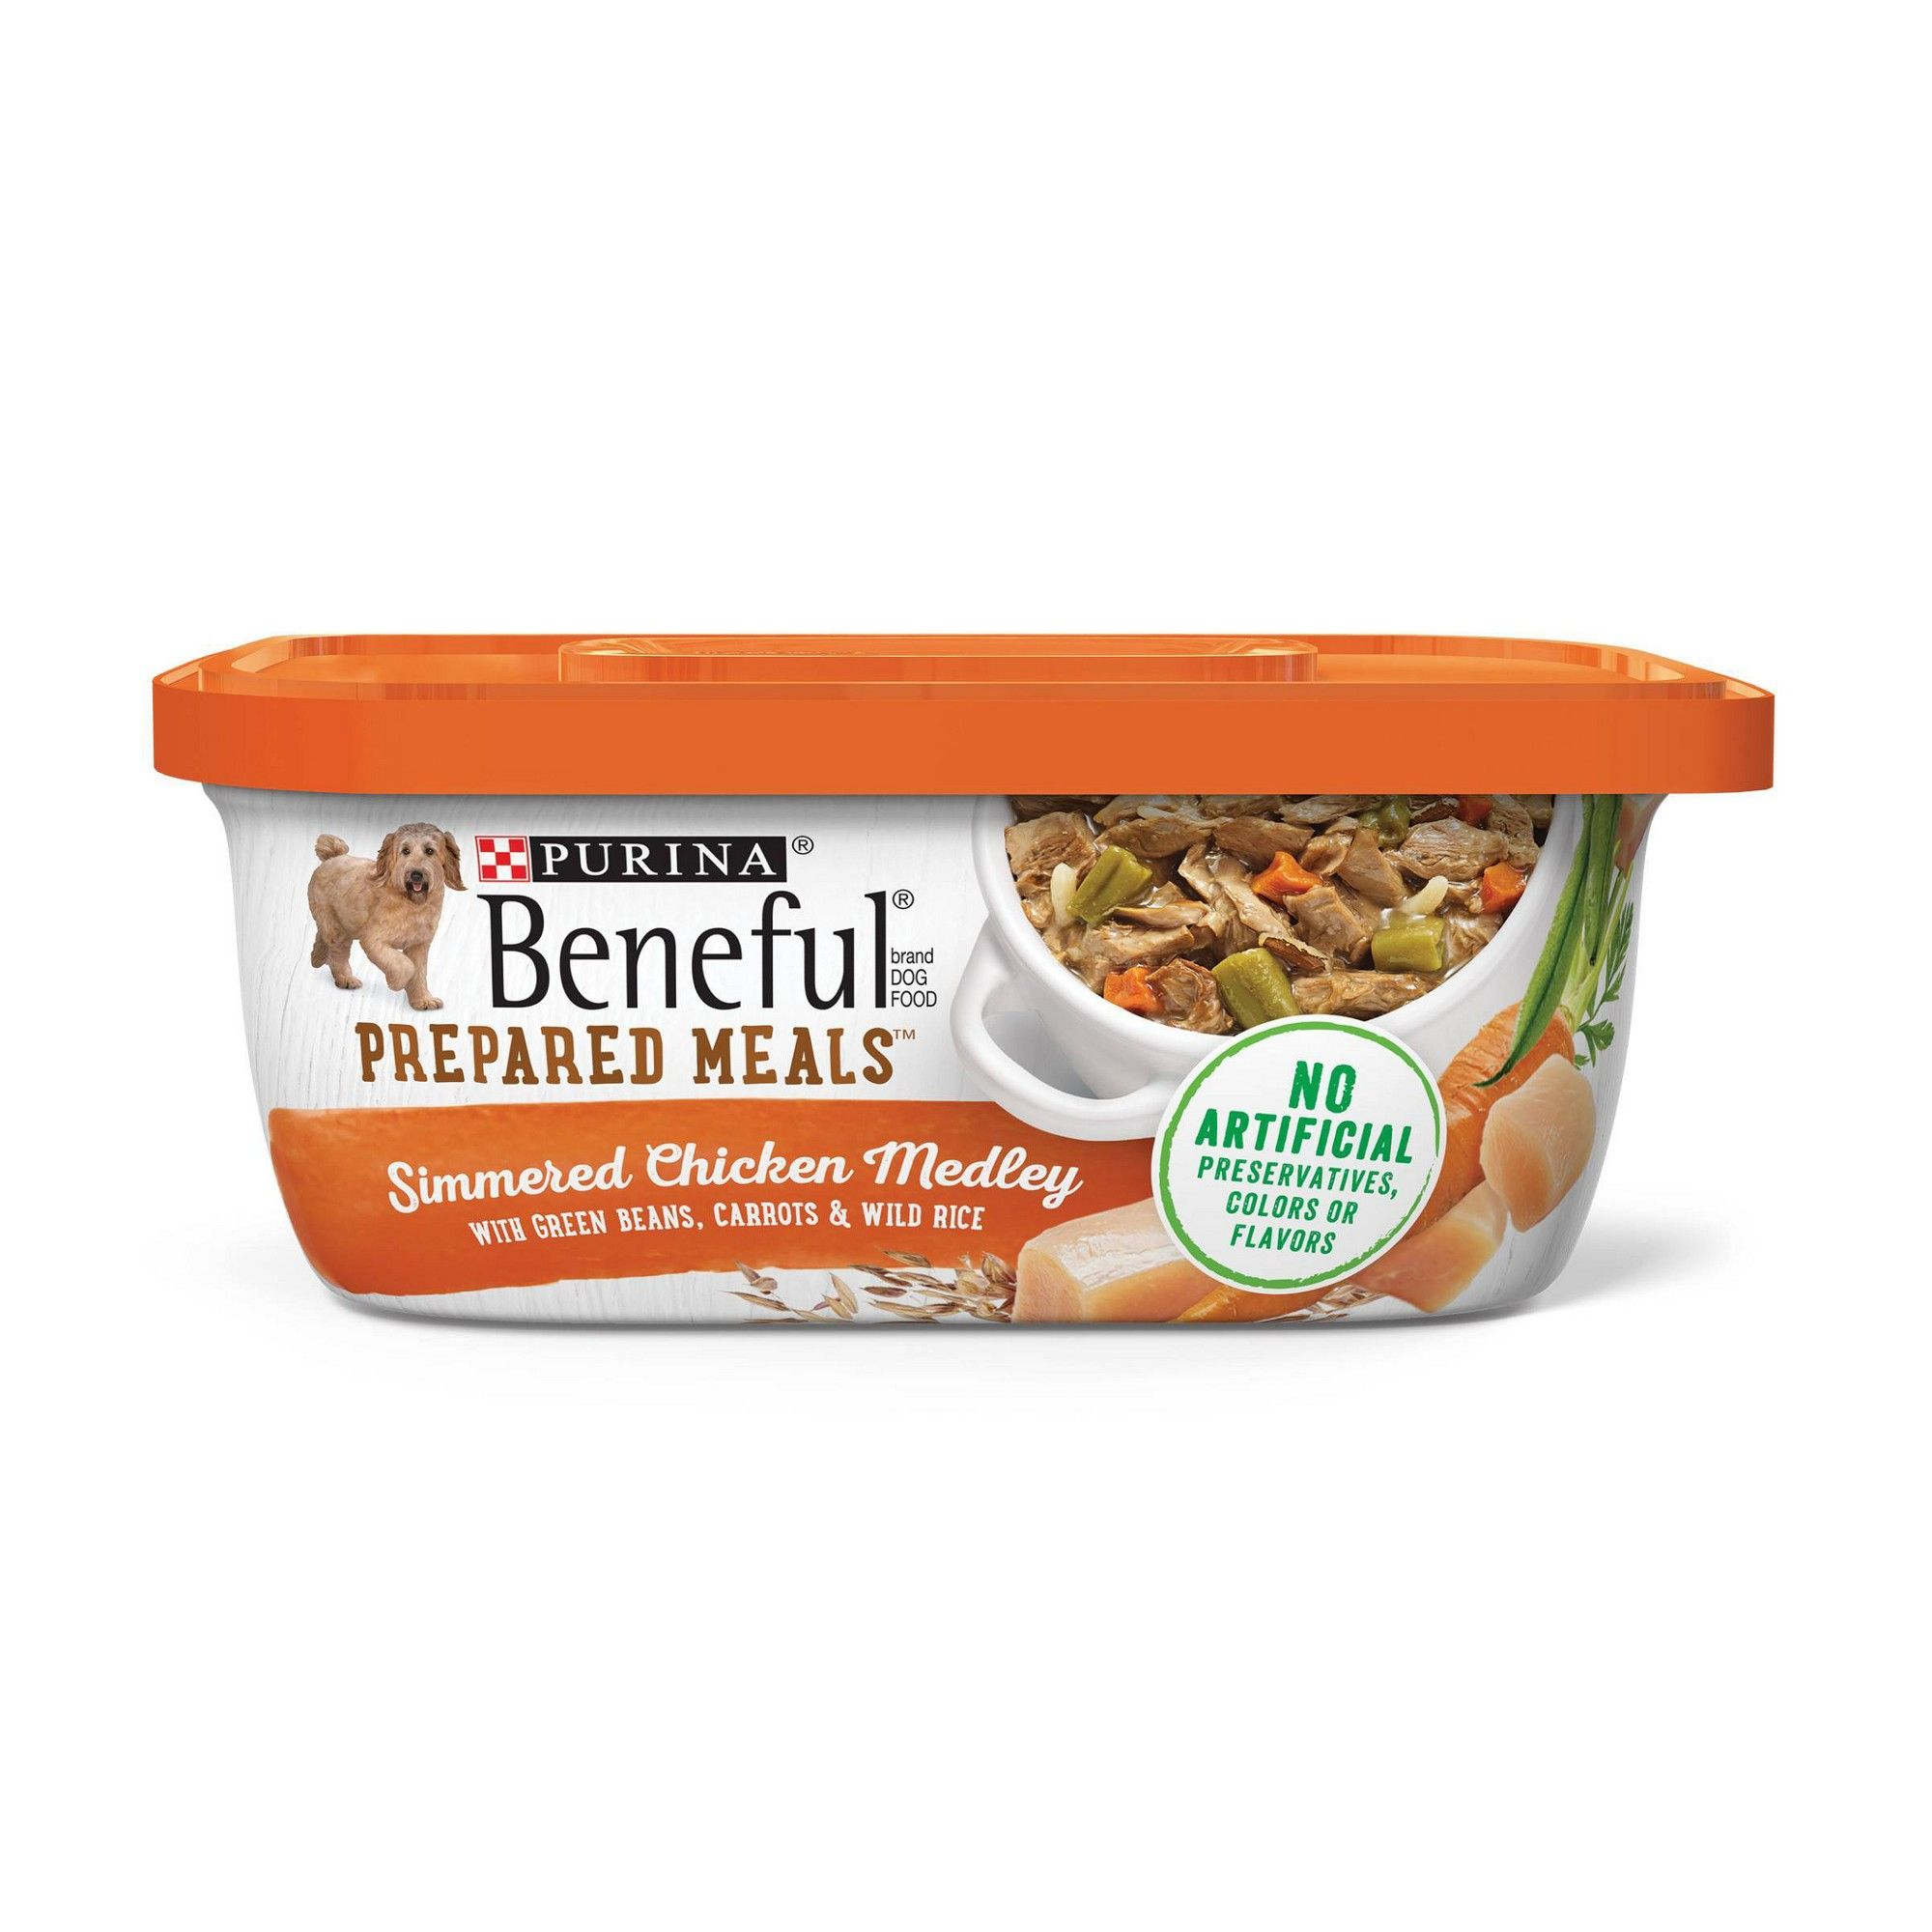 Beneful Prepared Meals Chicken Medley With Green Beans Carrots